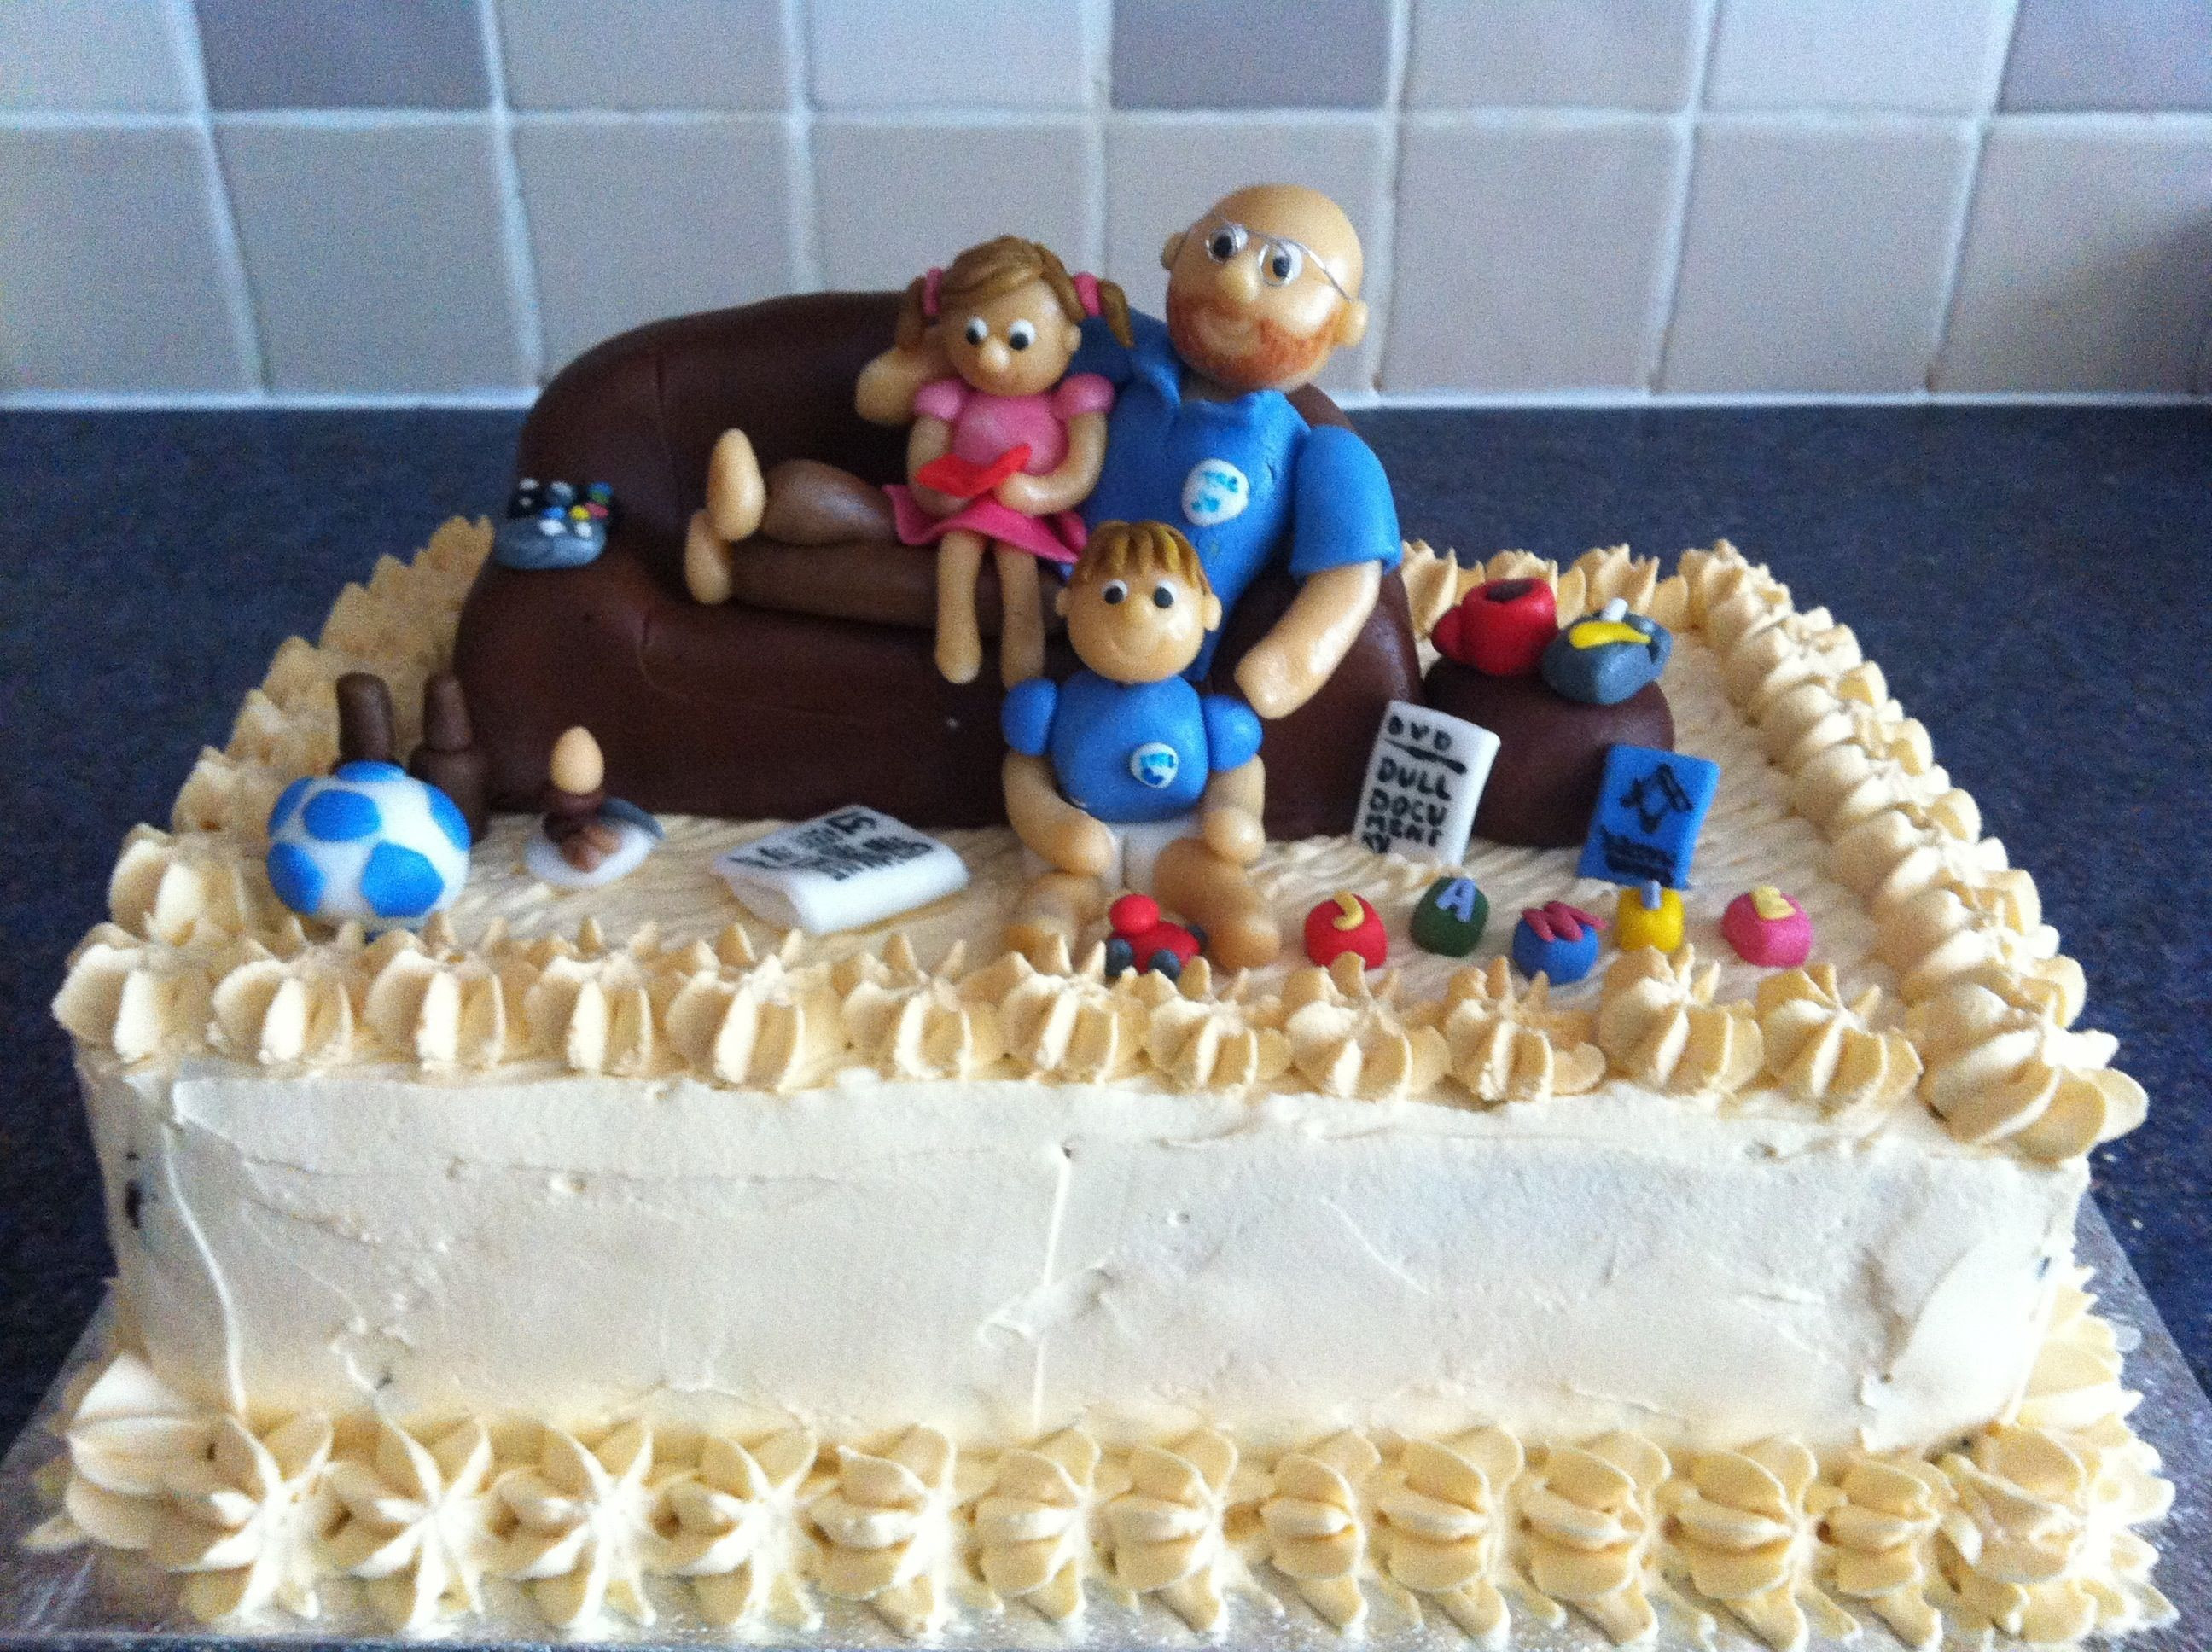 Best ideas about Birthday Cake For Husband . Save or Pin birthday cake for husband pictures of birthday cakes for a Now.